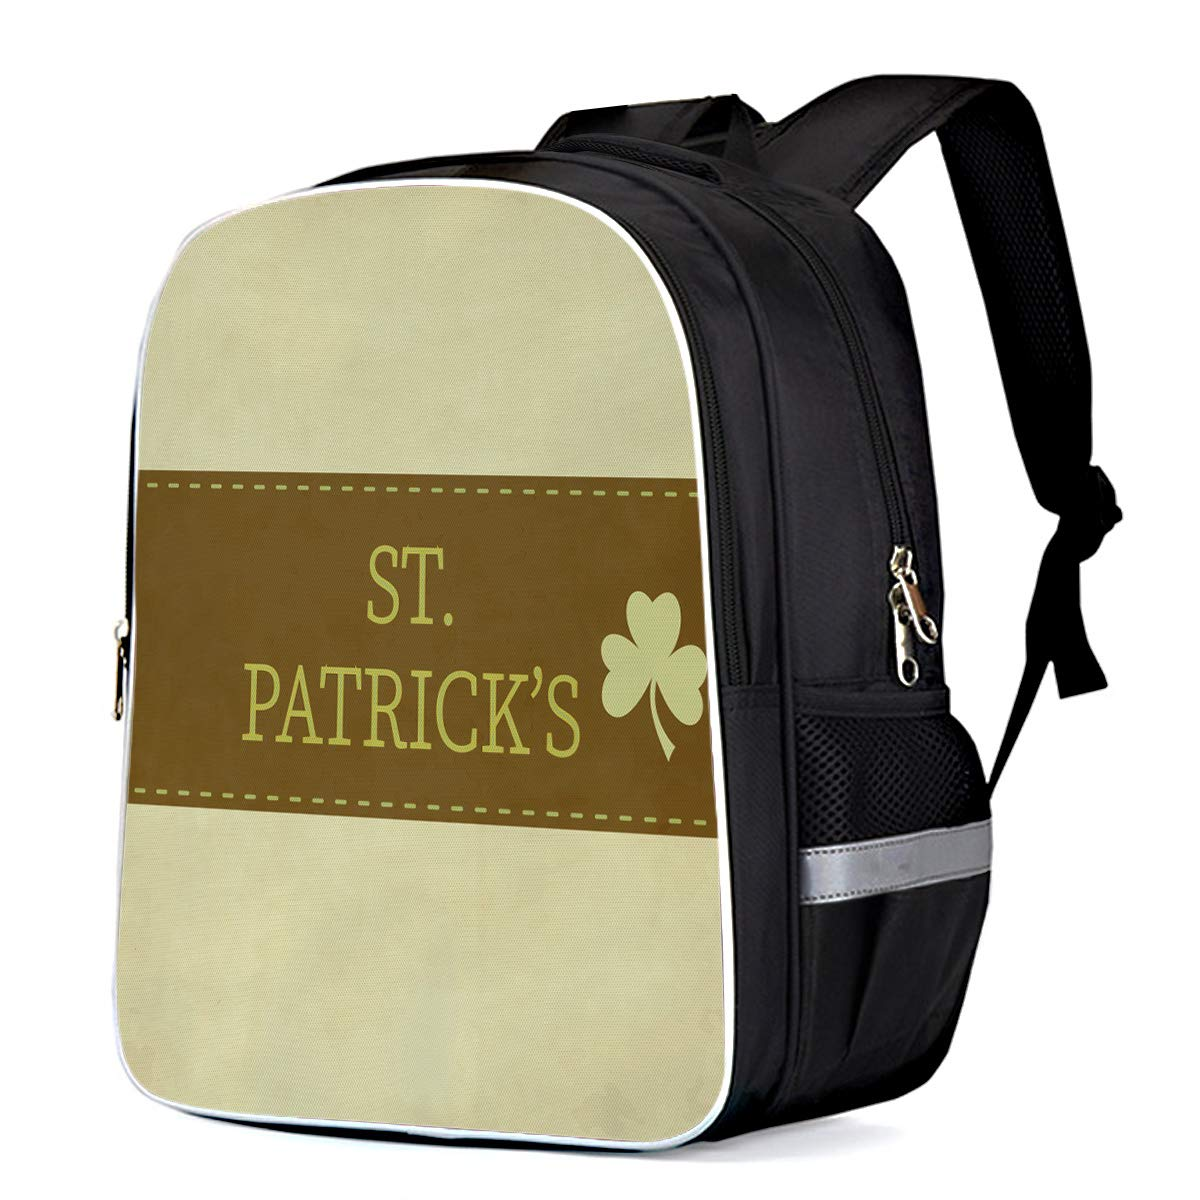 Patricks Day Pattern Canvas Coin Purse Cute Change Pouch Wallet Bag Multifunctional Cellphone Bag with Handle St